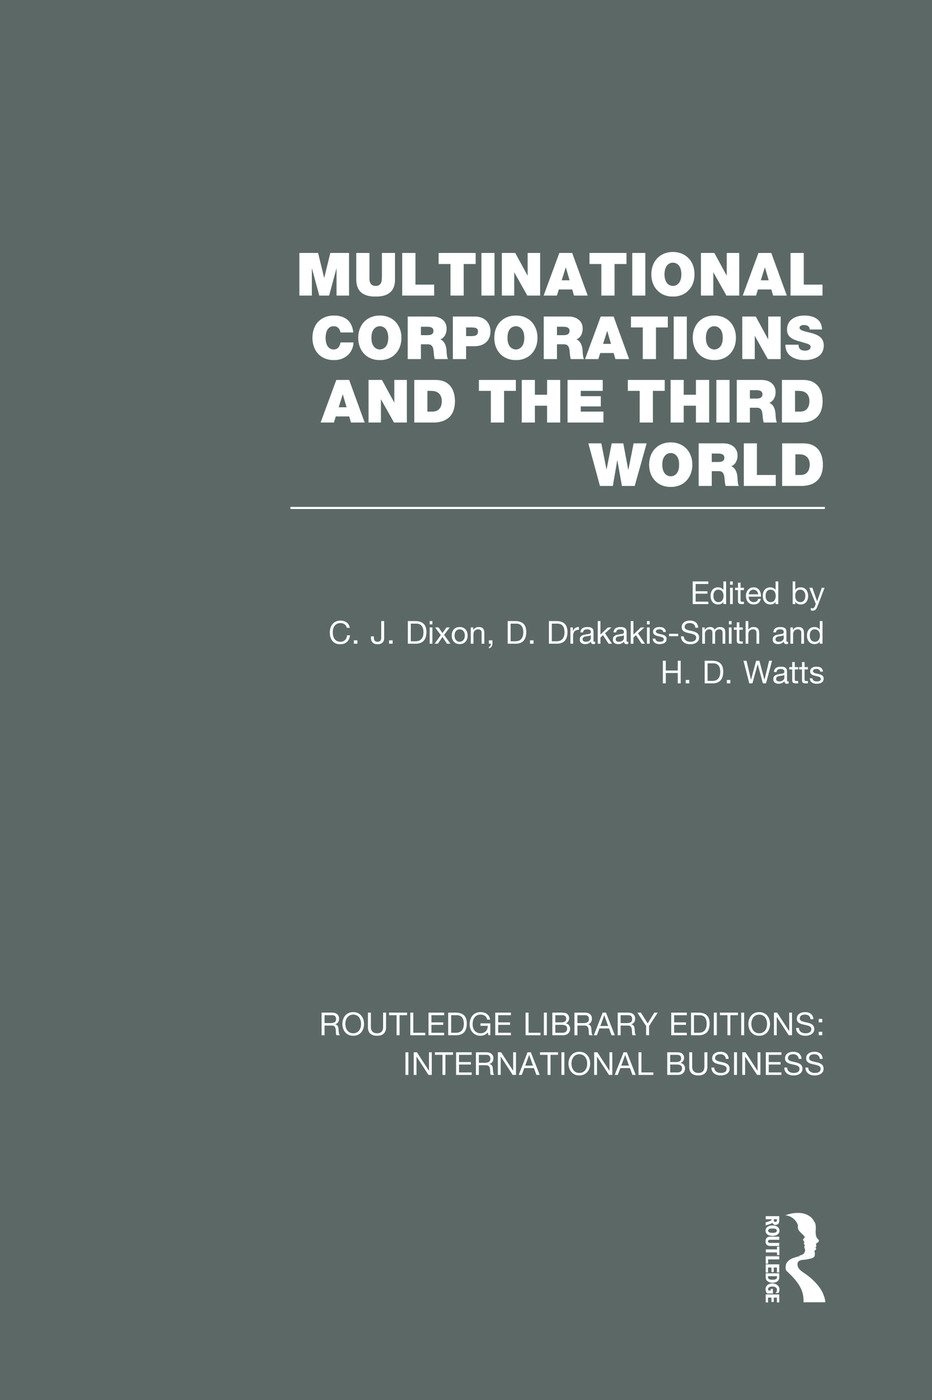 Multinational Corporations and the Third World (RLE International Business) book cover